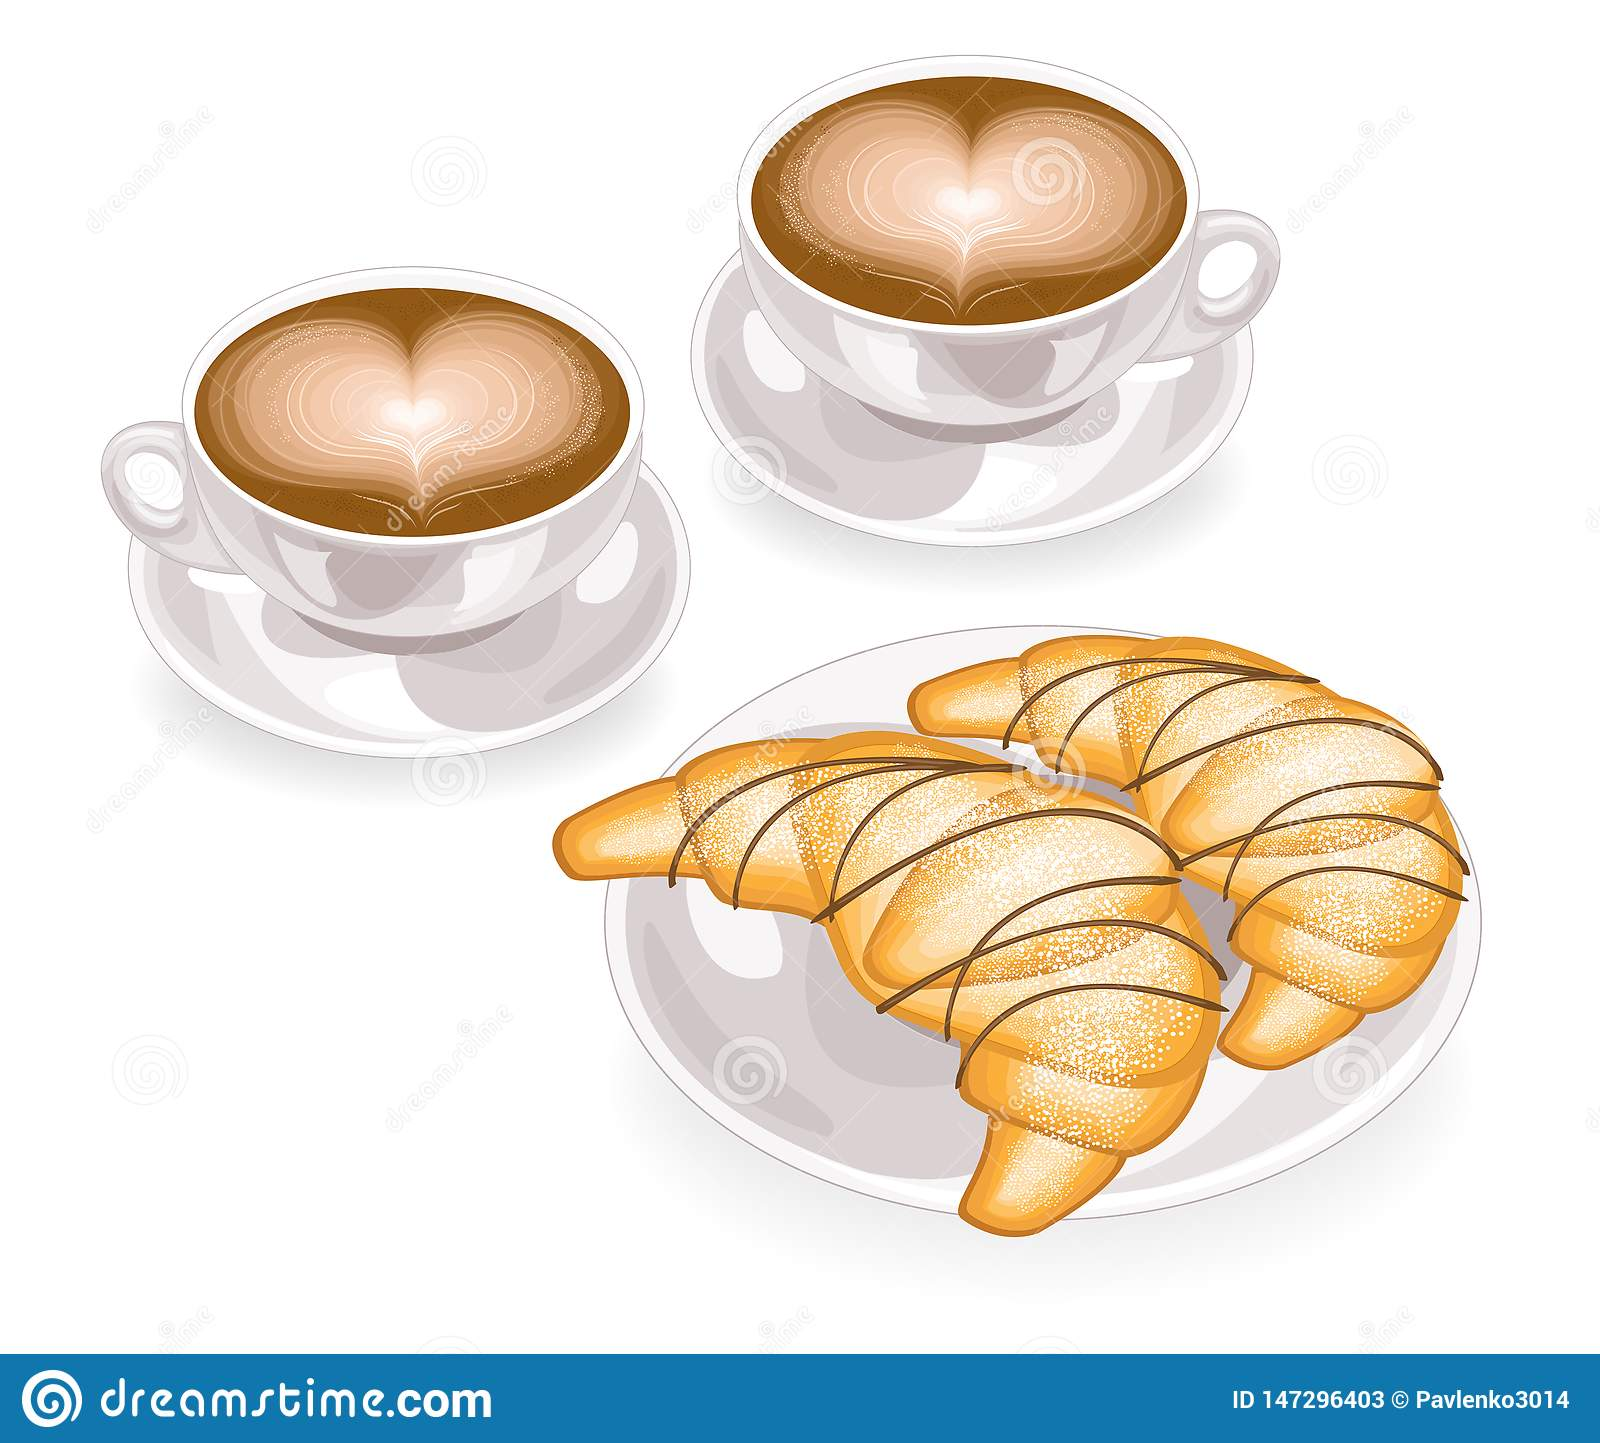 Two cups of coffee with foam in the shape of heart and fresh croissant on a plate with chocolate. Classic French breakfast. Vector